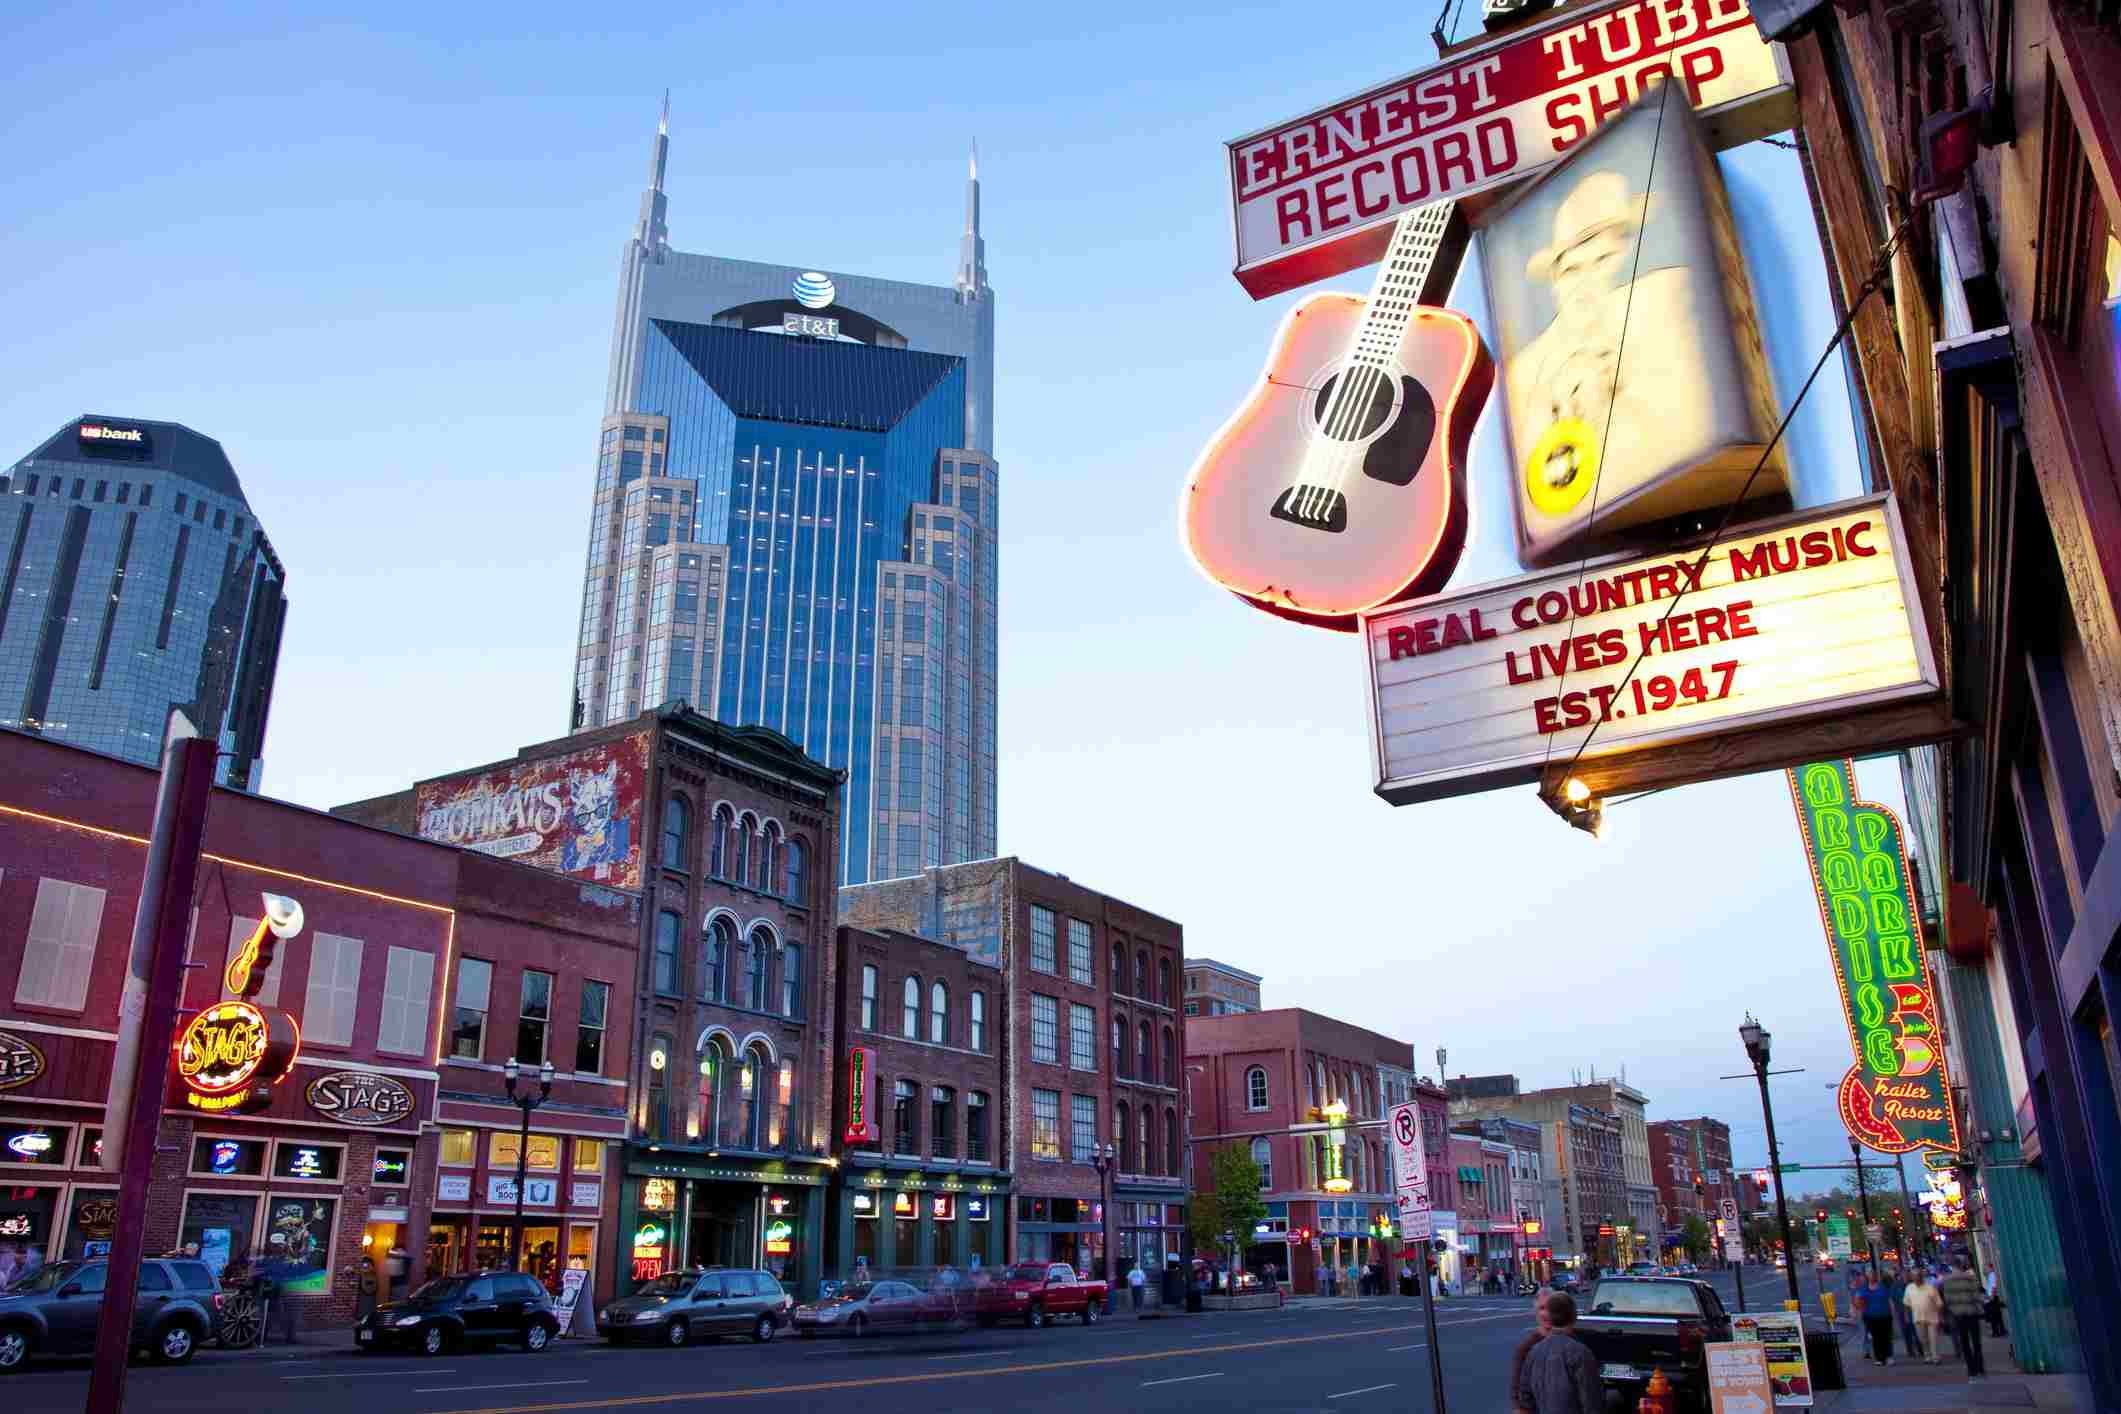 AT&T Building towers over historic buildings of lower Broadway in Nashville